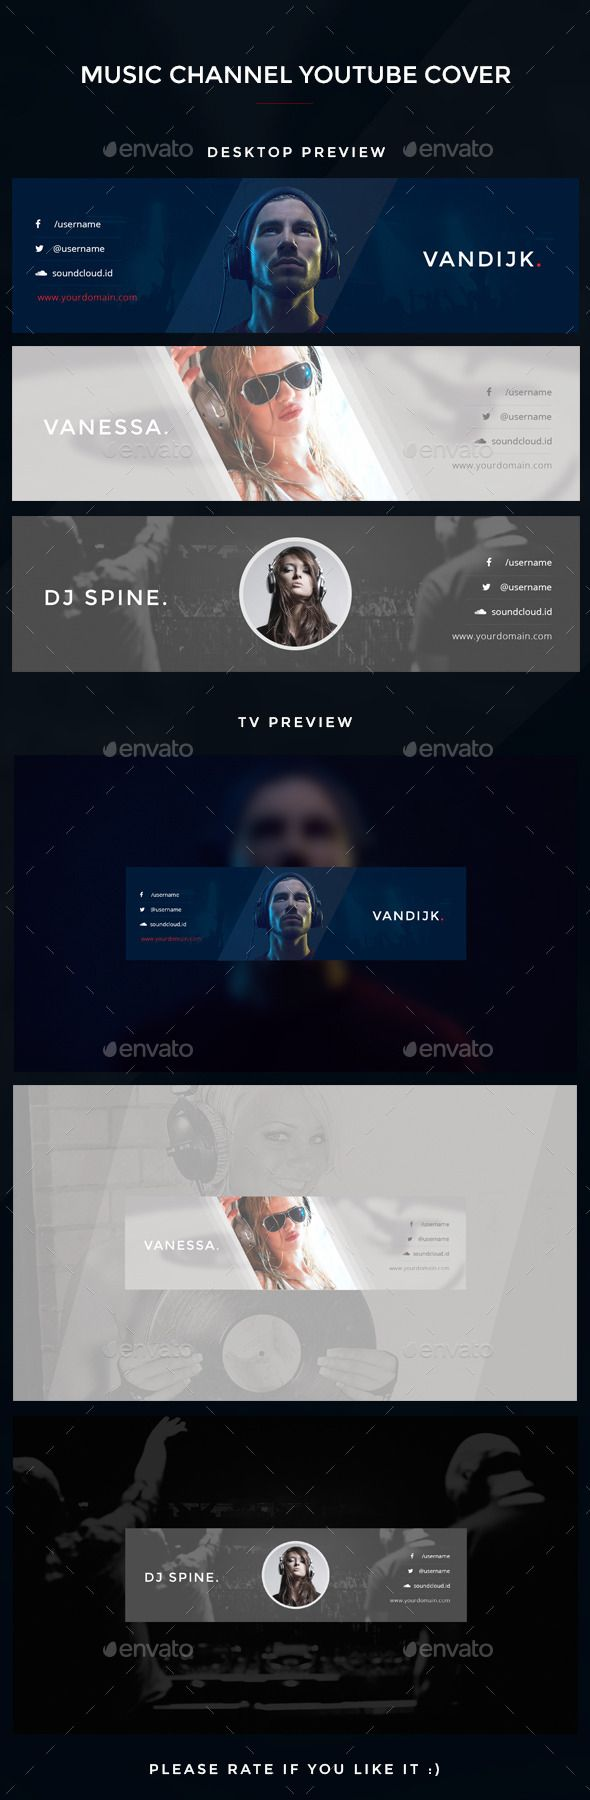 Youtube Music Channel Art Cover Template PSD. Download here: http://graphicriver.net/item/youtube-music-channel-art/12965317?ref=ksioks